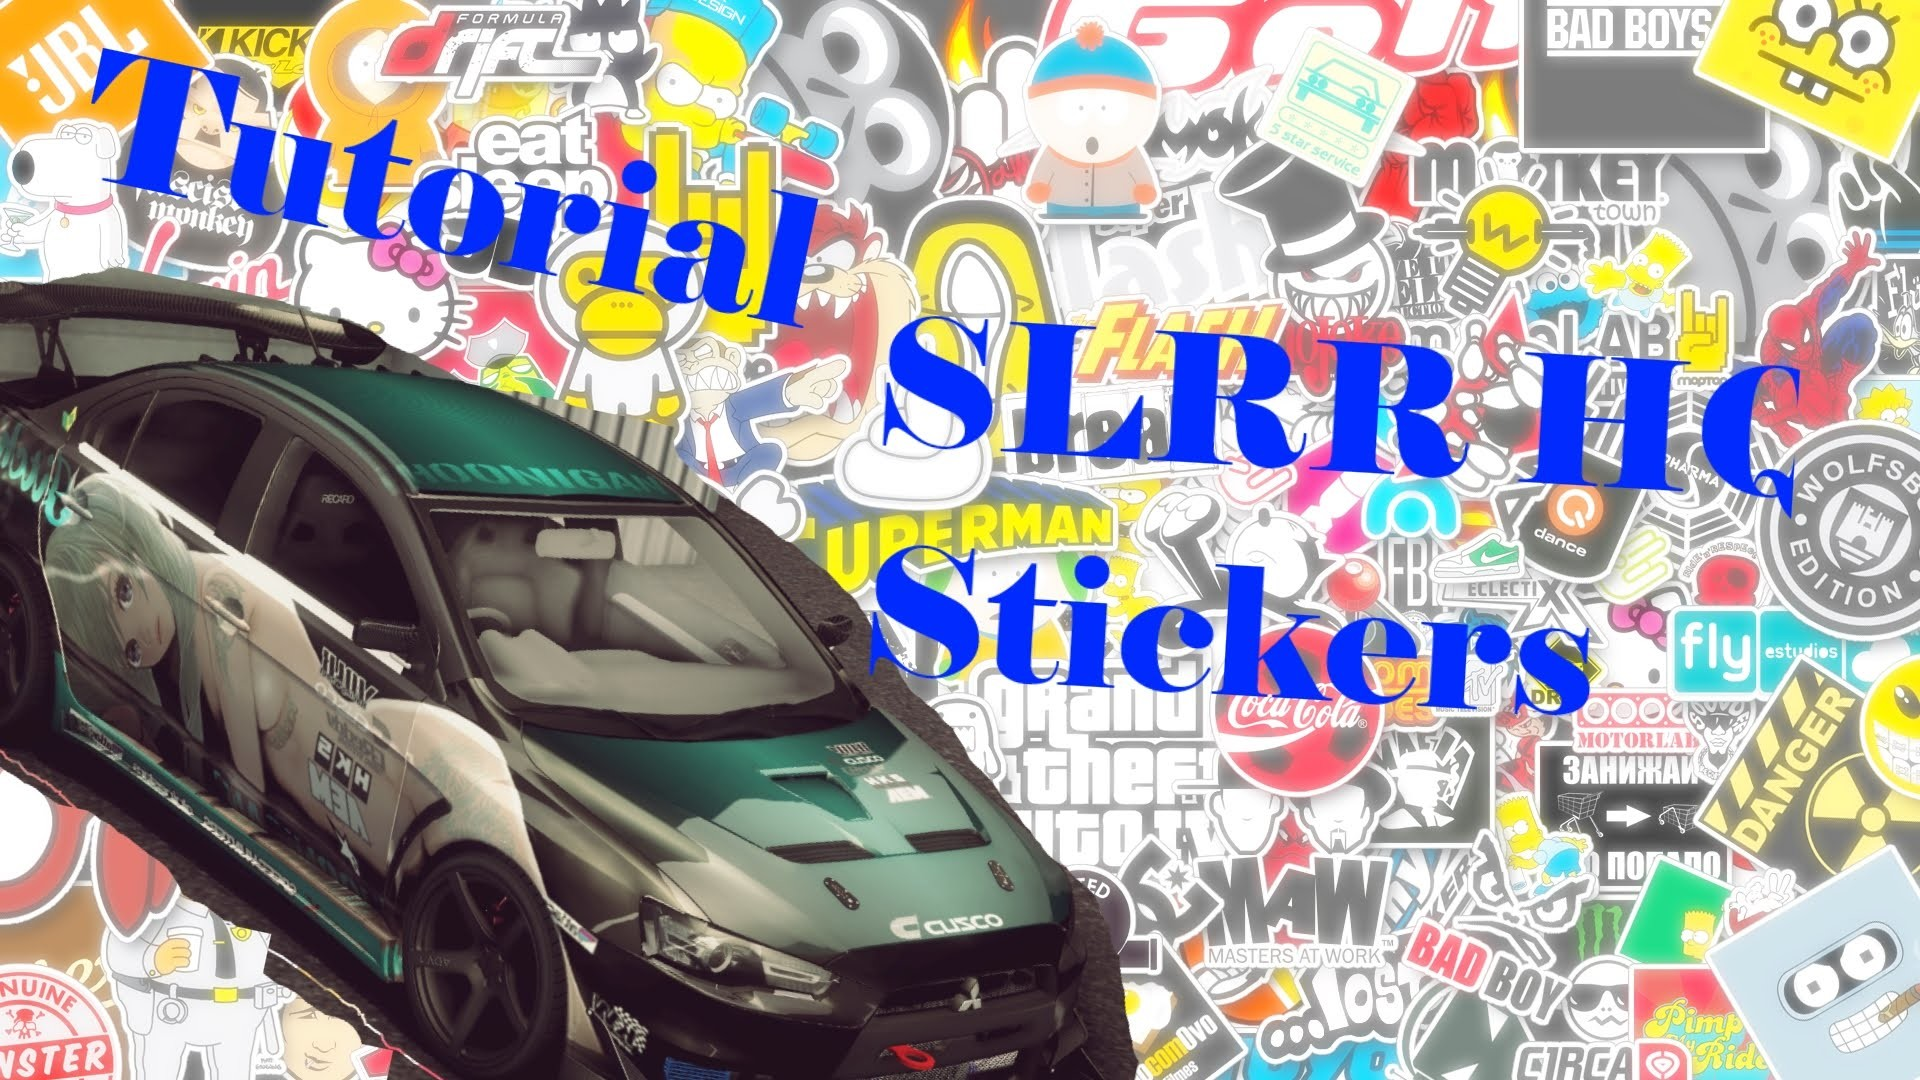 1920x1080 TUTORIAL: How to get HQ sticker in SLRR